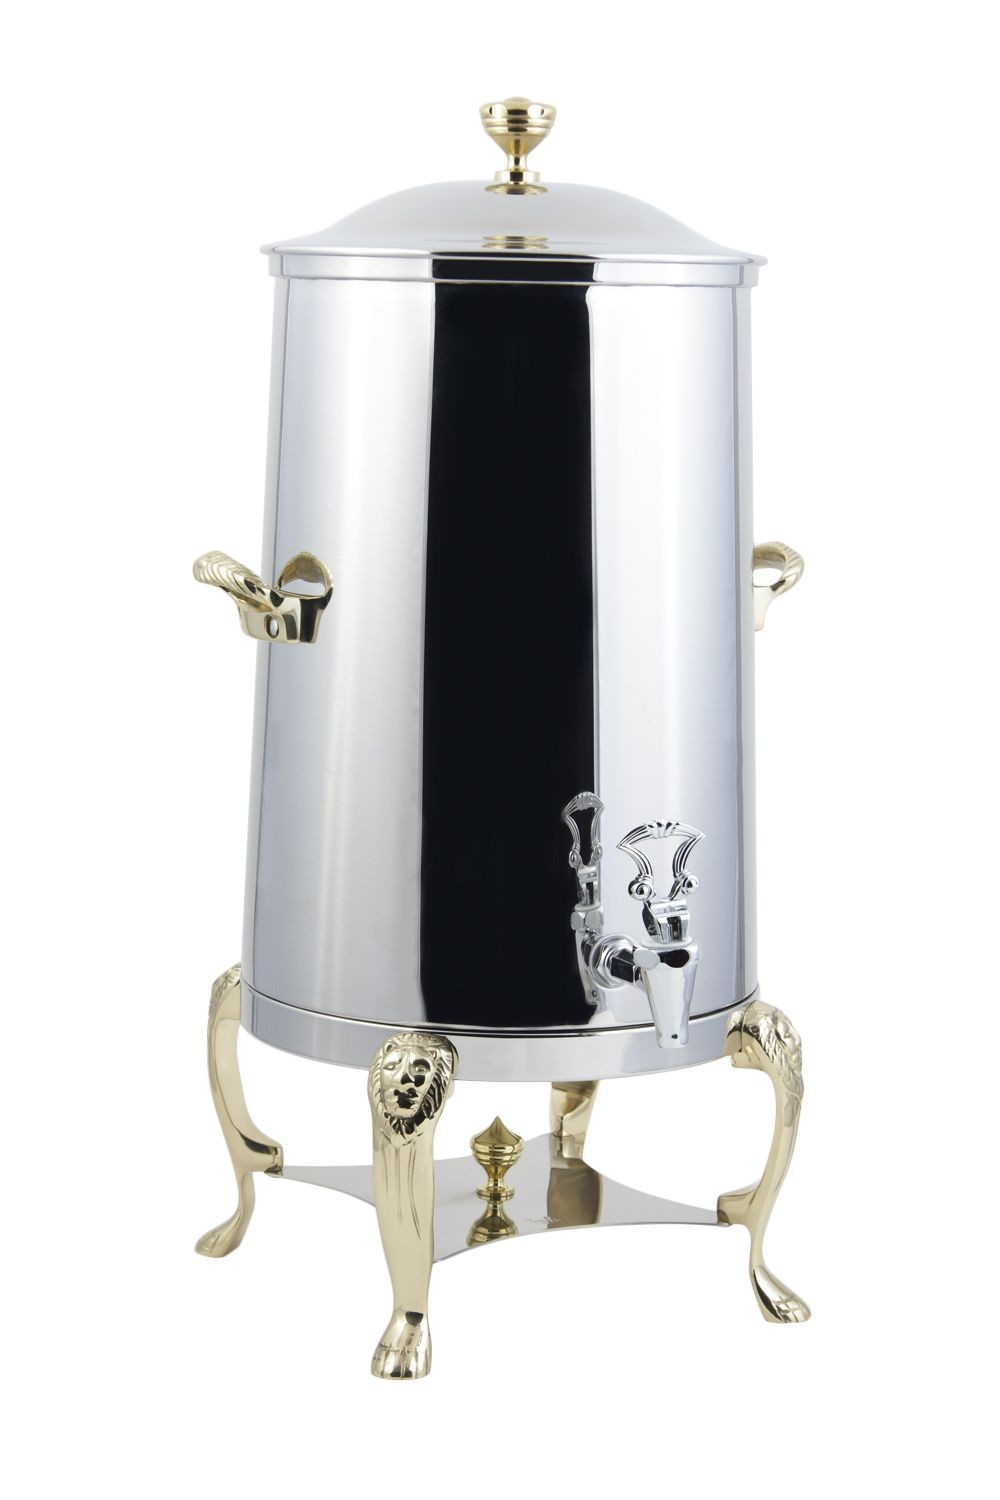 Bon Chef 48005 Lion Insulated Coffee Urn with Brass Trim, 5 Gallon